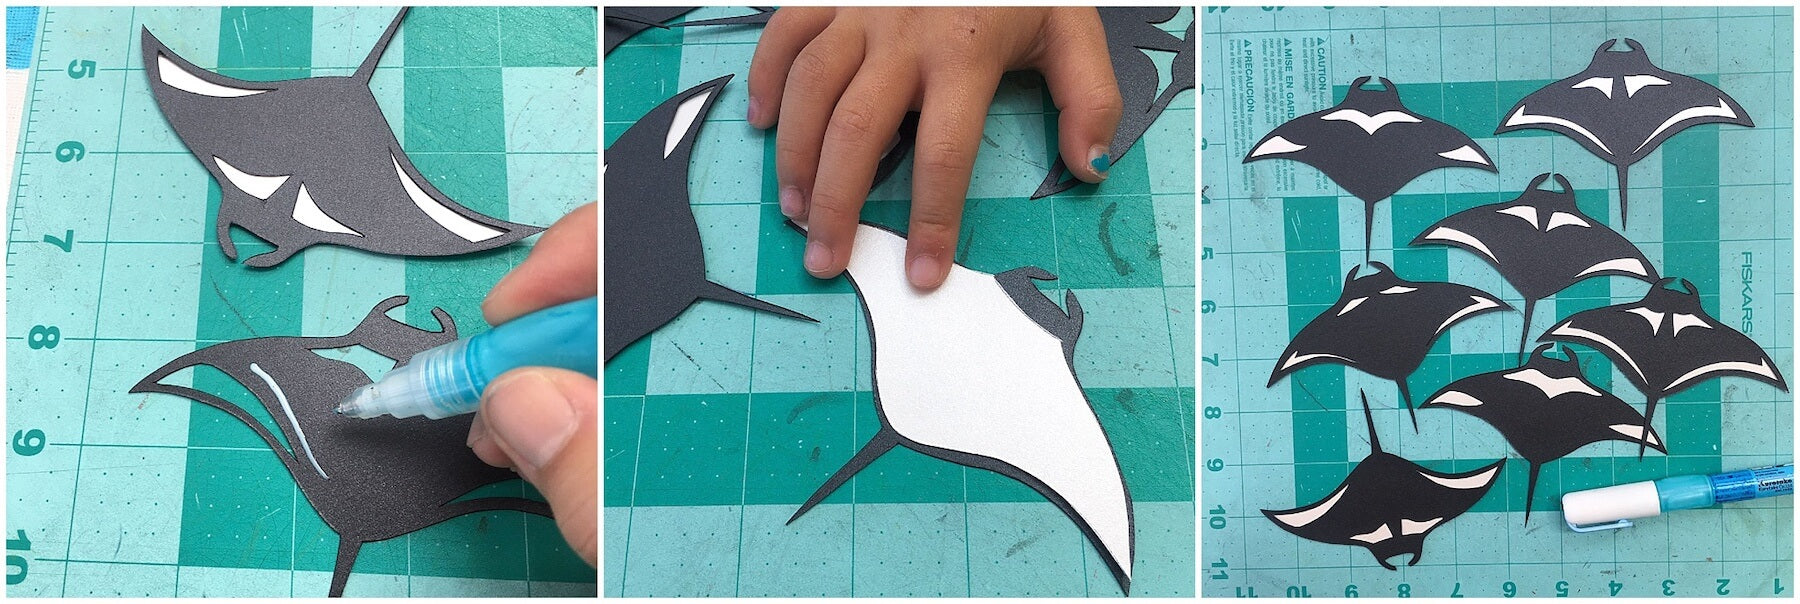 Gluing manta ray pieces together